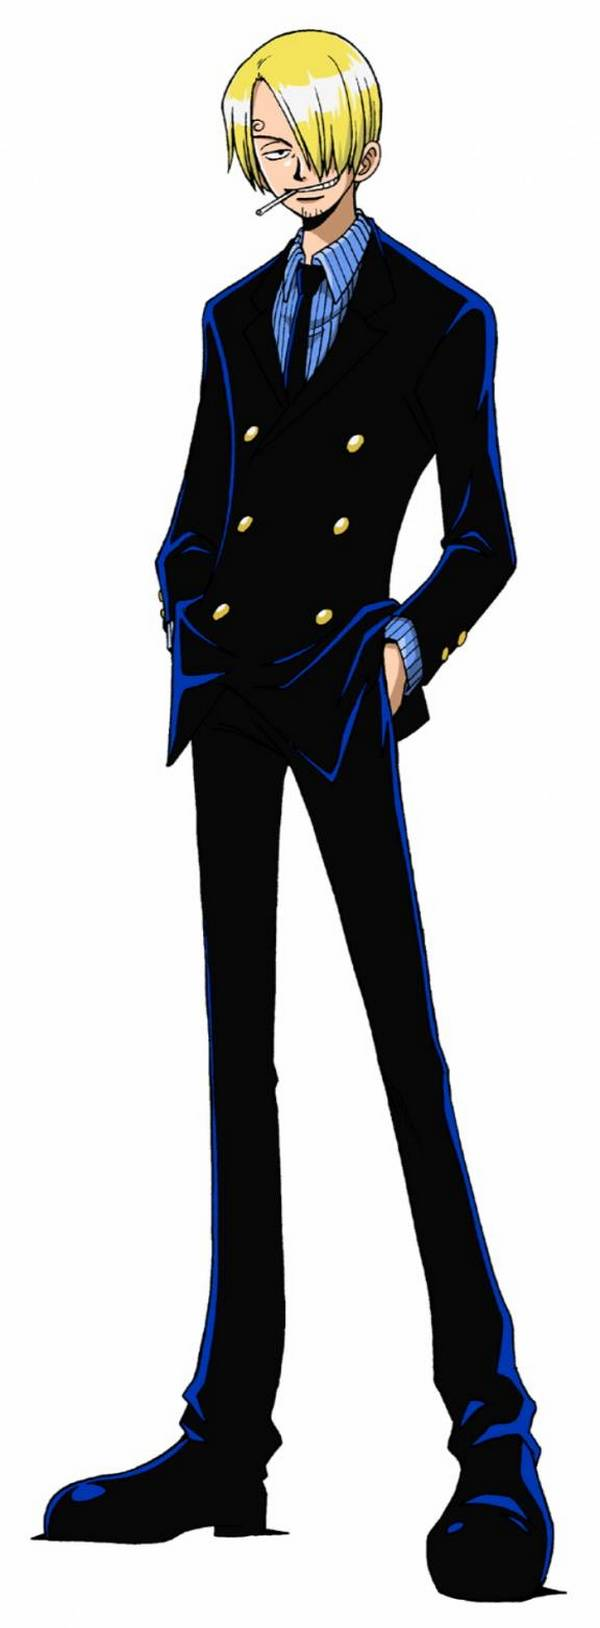 Sanji - ONE PIECE - Image #43635 - Zerochan Anime Image Board